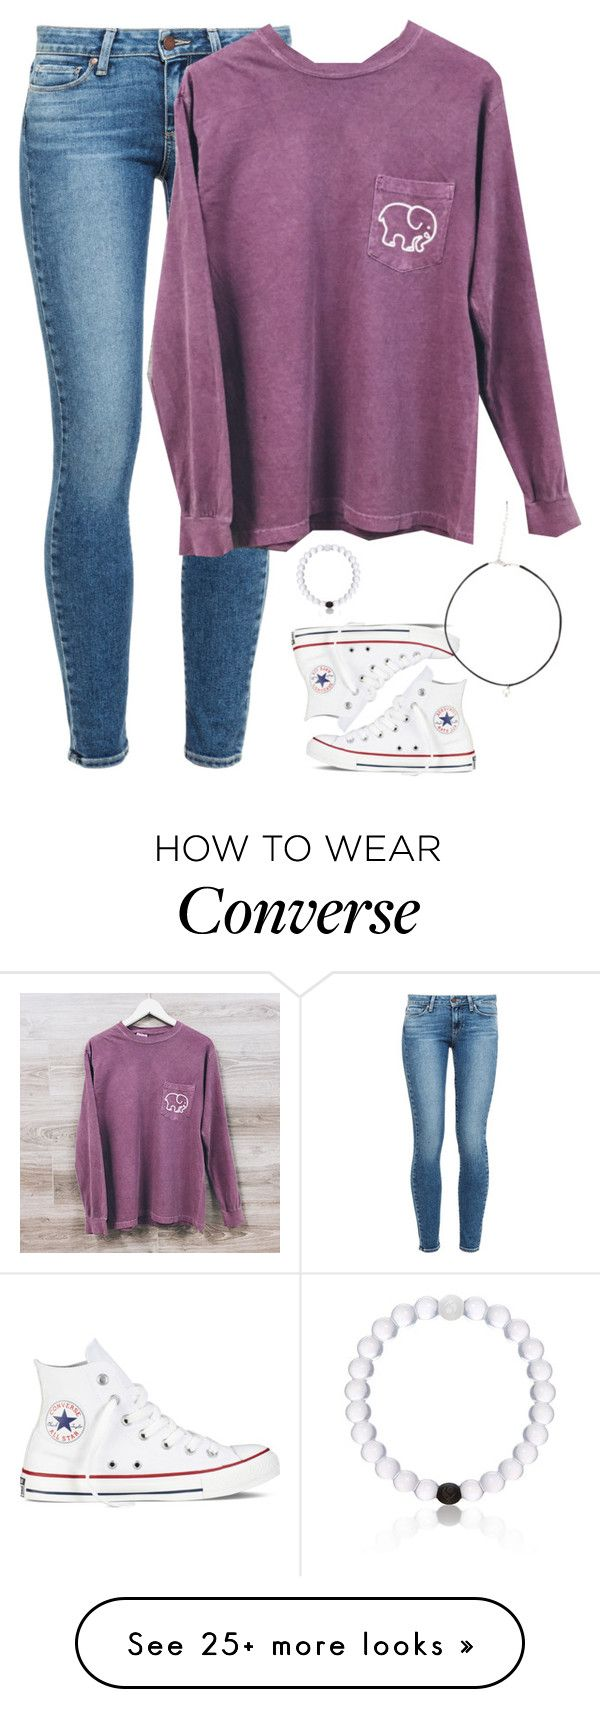 """Want this shirt!!~ hows the new setup?"" by meljordrum on Polyvore featuring Converse, Paige Denim and Everest"